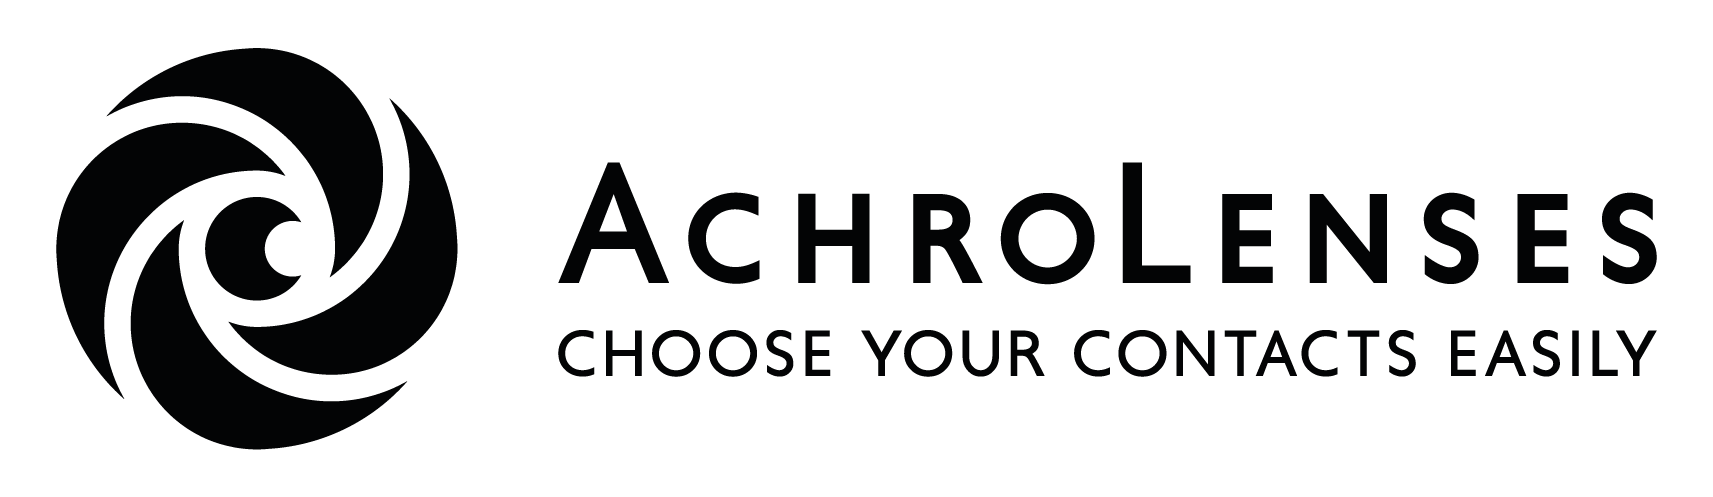 AchroLenses logo black